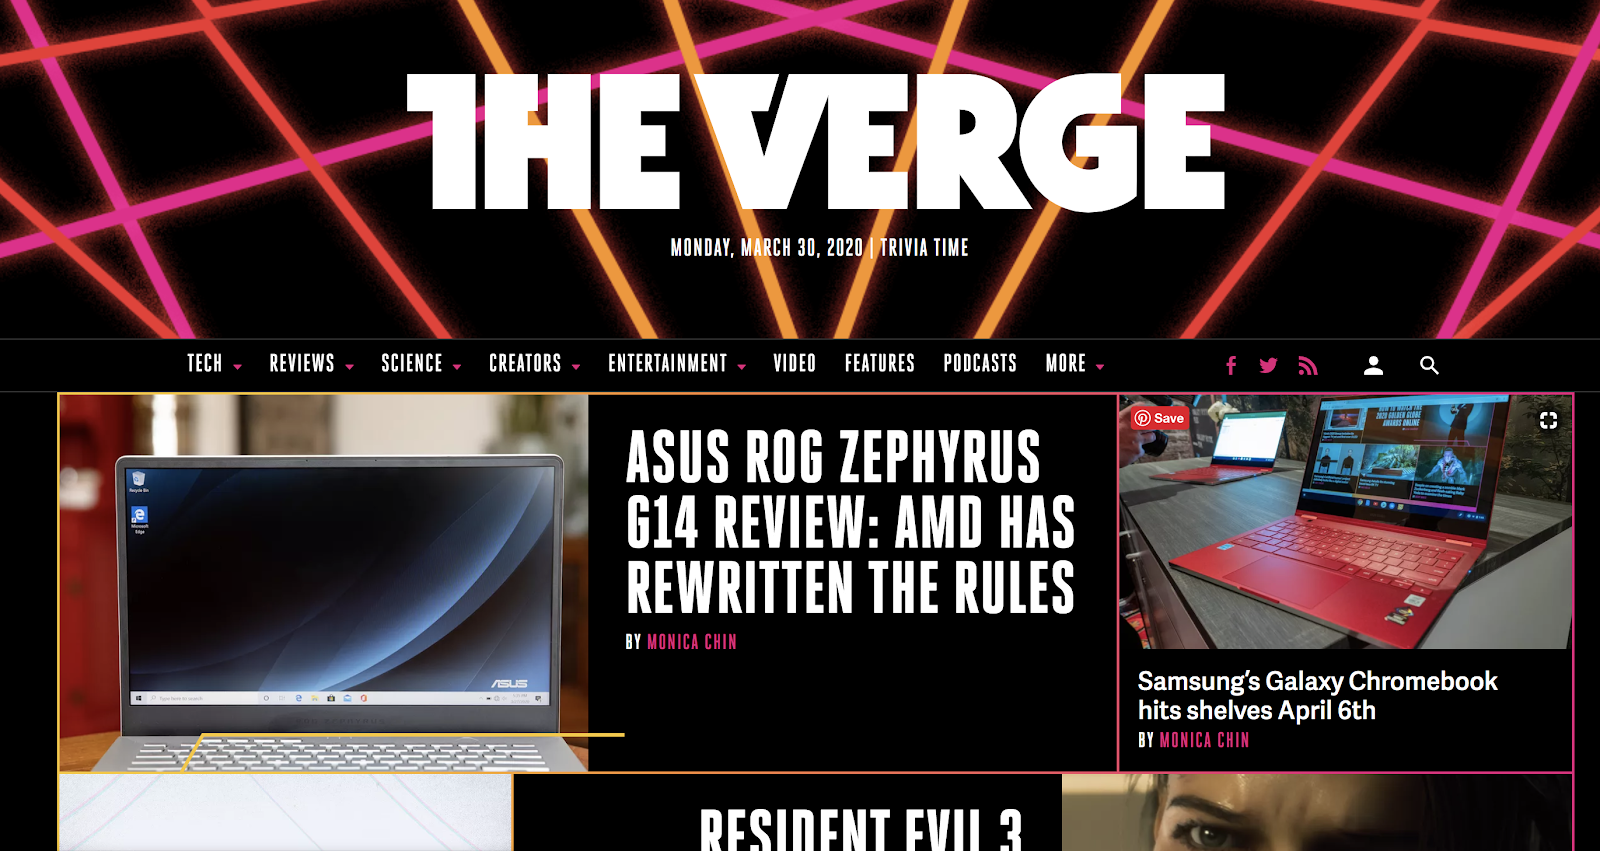 The Verge Homepage Screenshot (Blog Layout Examples)